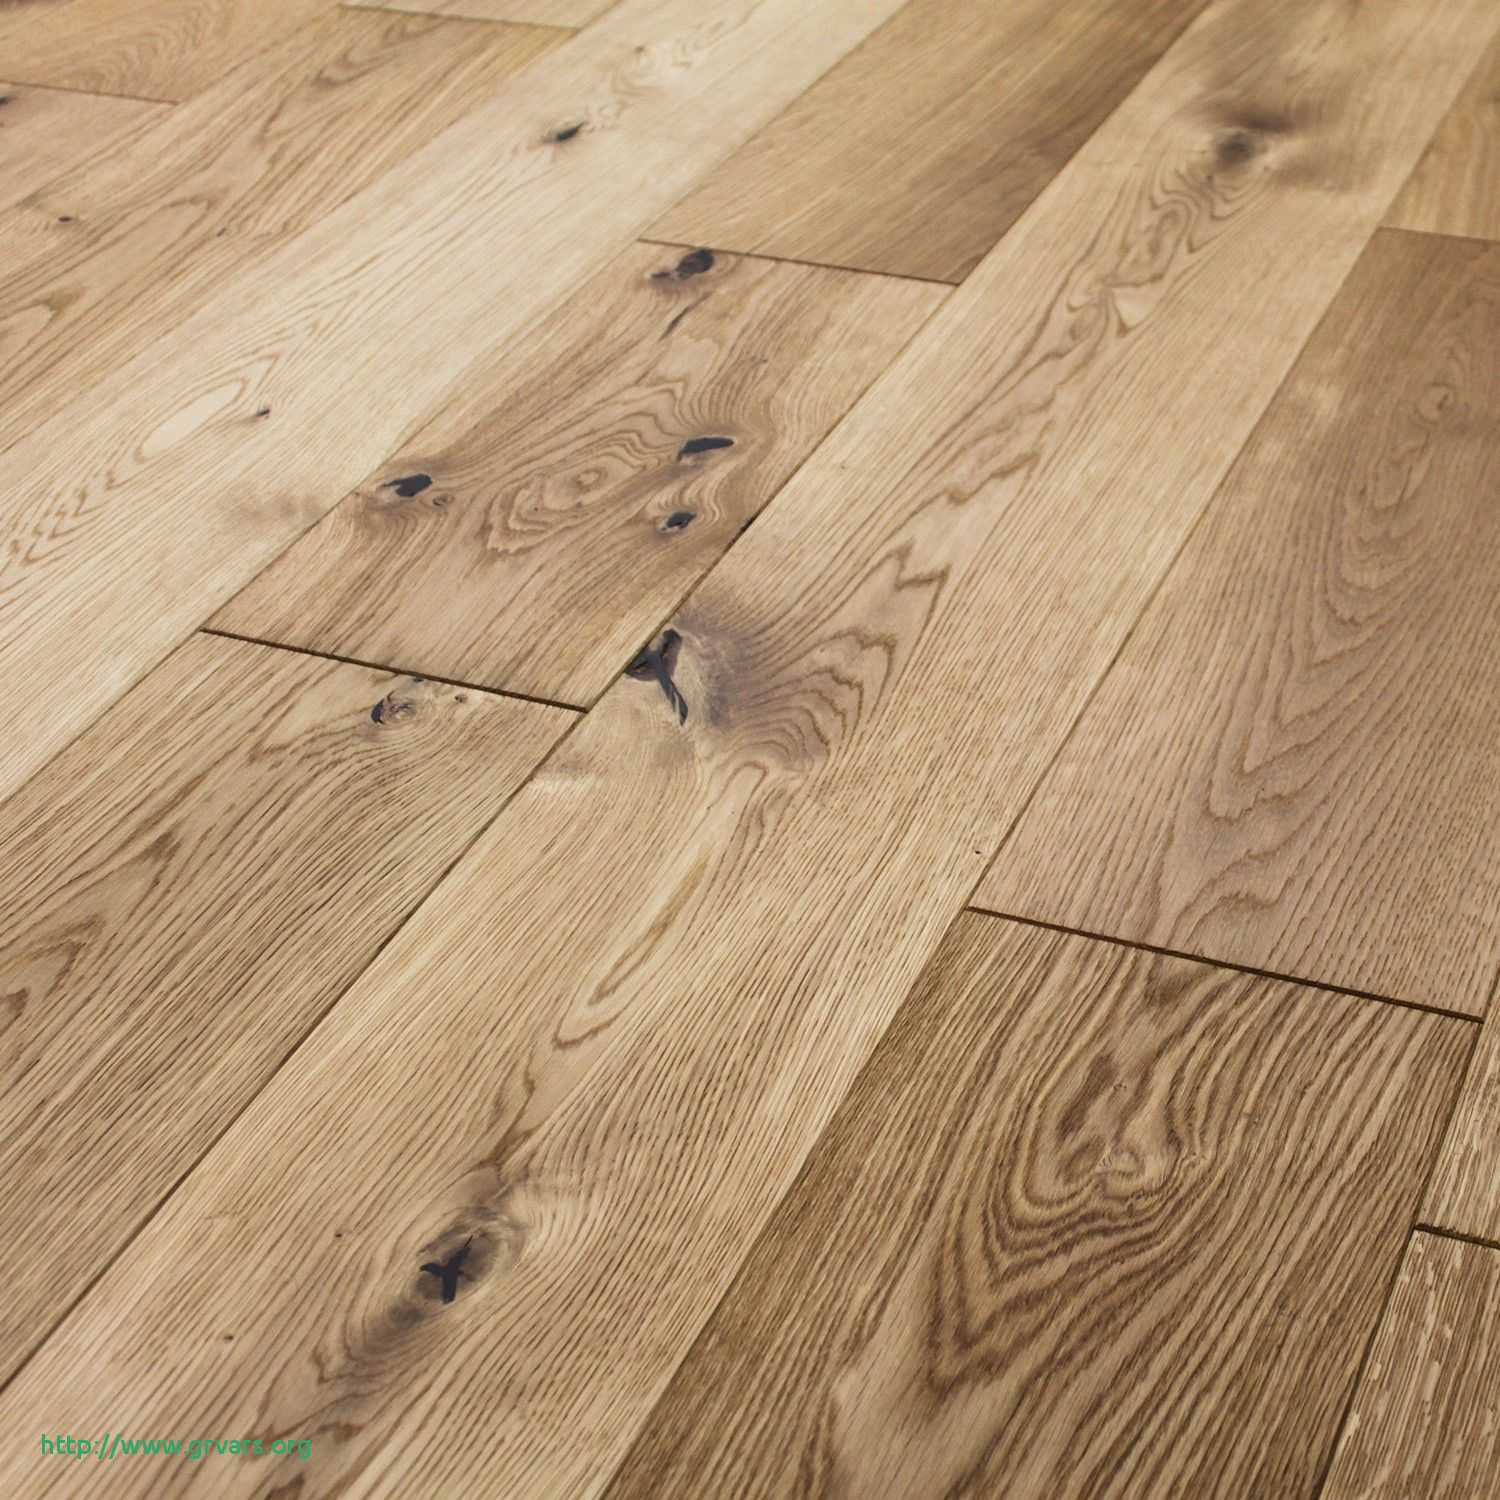 maple hardwood flooring toronto of 15 charmant how to buy engineered hardwood flooring ideas blog within how to buy engineered hardwood flooring impressionnant rustic cottage oak brushed lacquered engineered wood